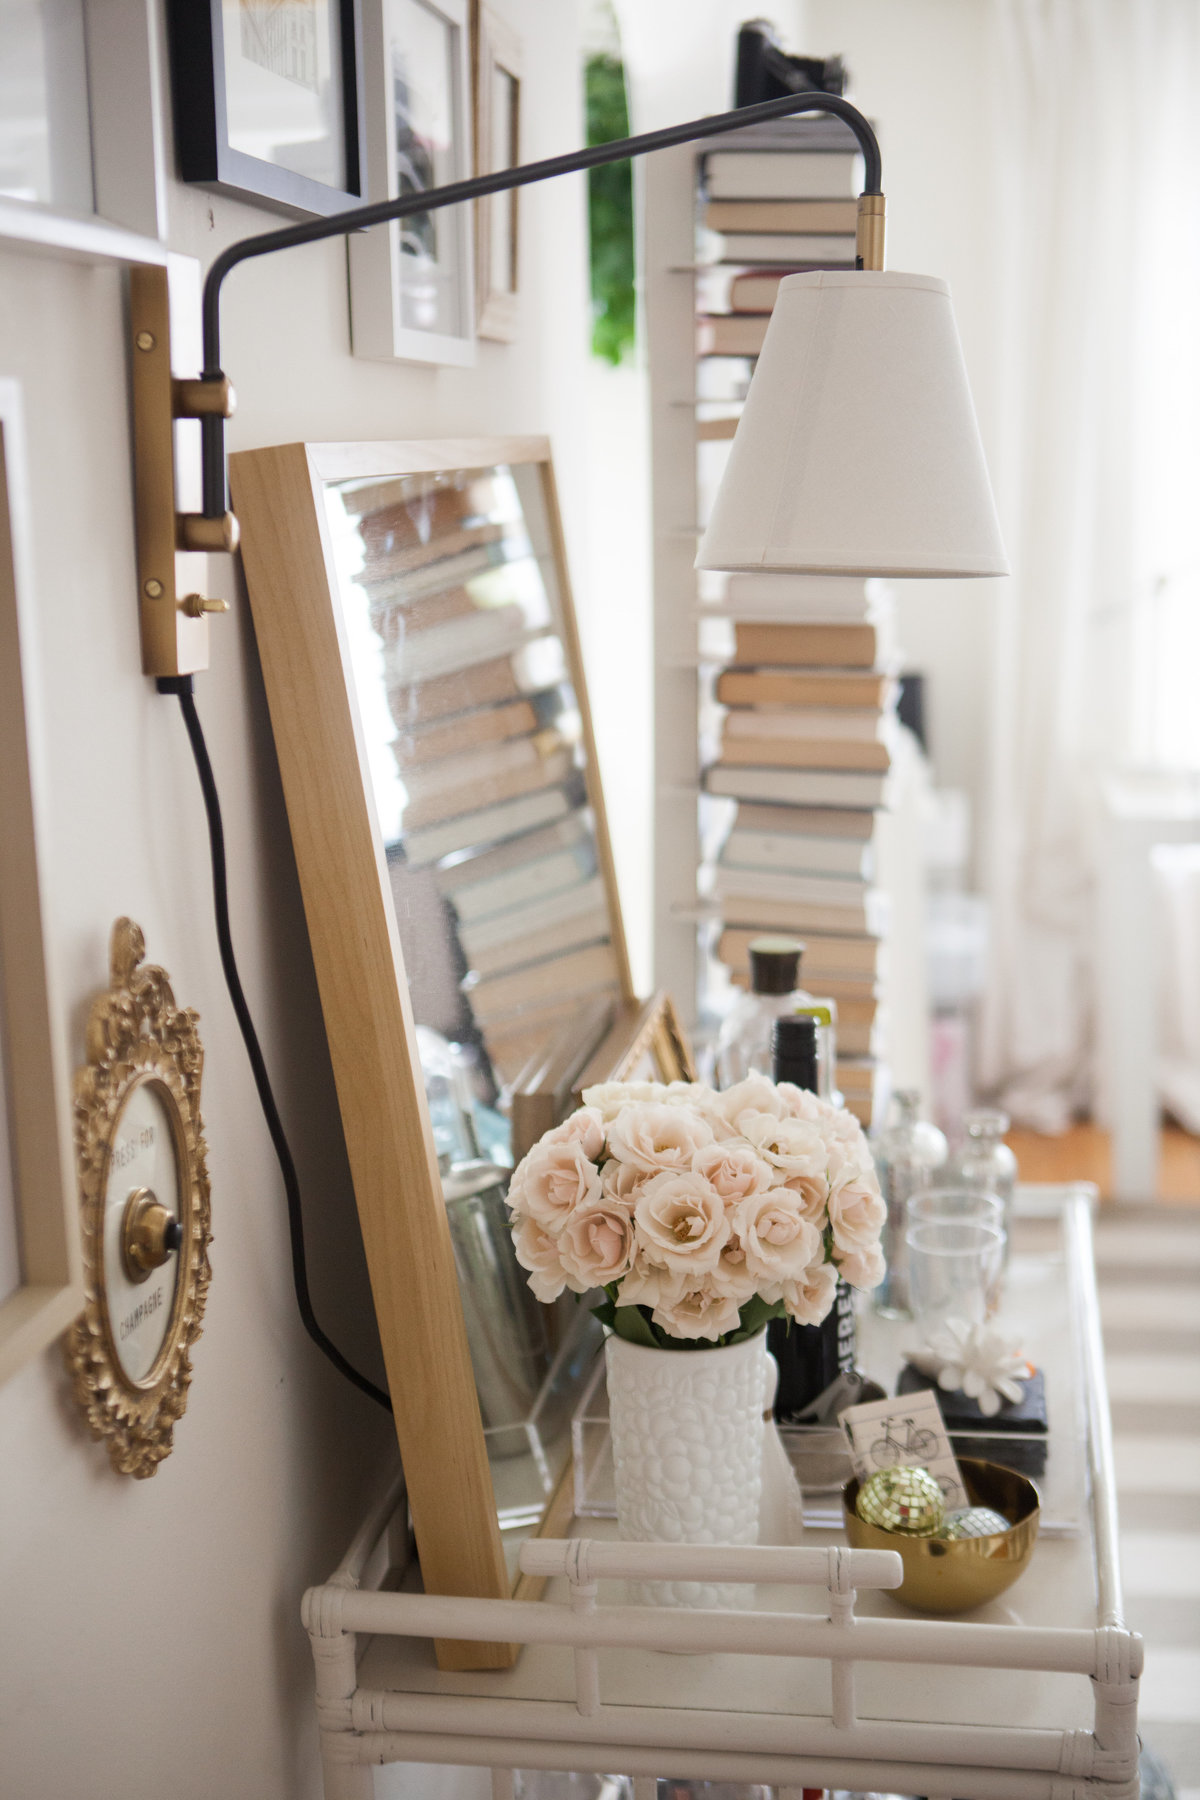 Alaina-Kaczmarksi-Home-Tour-The-Everygirl-30